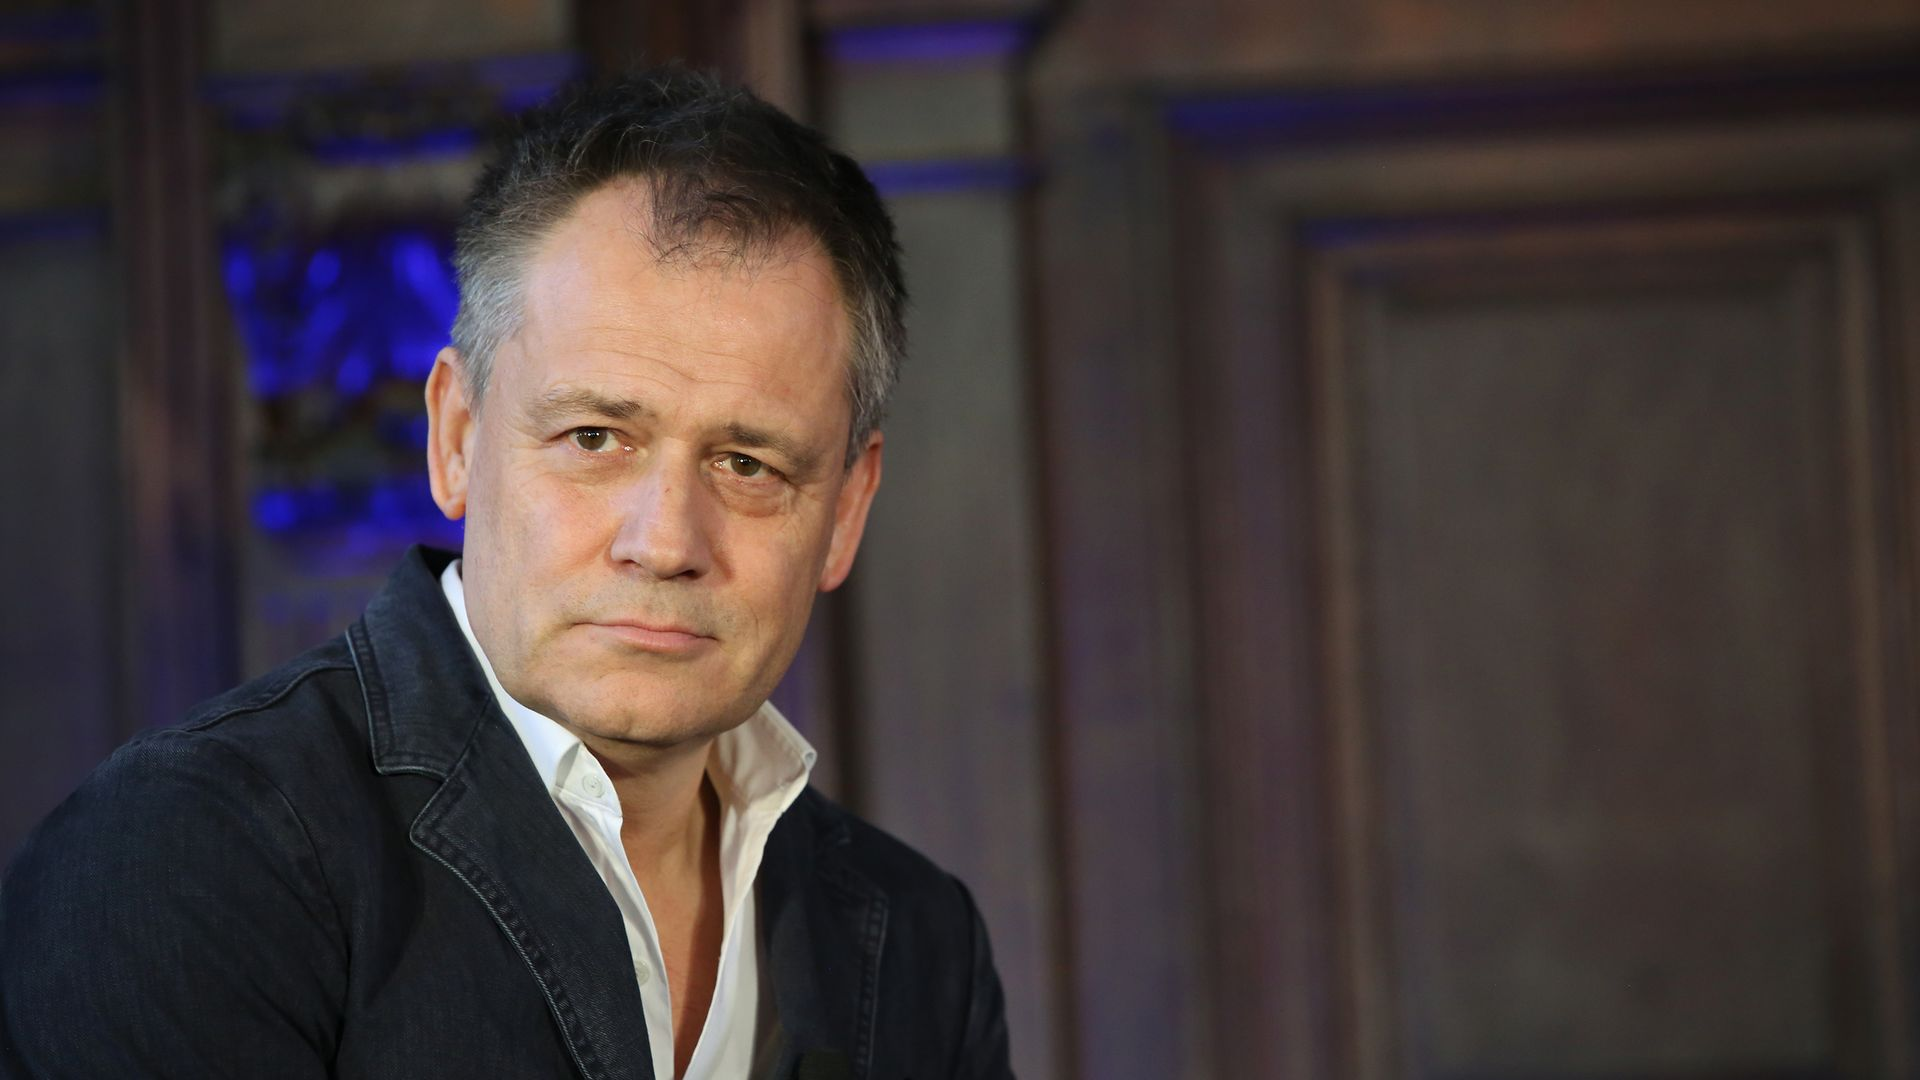 THE DON: Director Michael Grandage in February 2018 - Credit: Getty Images